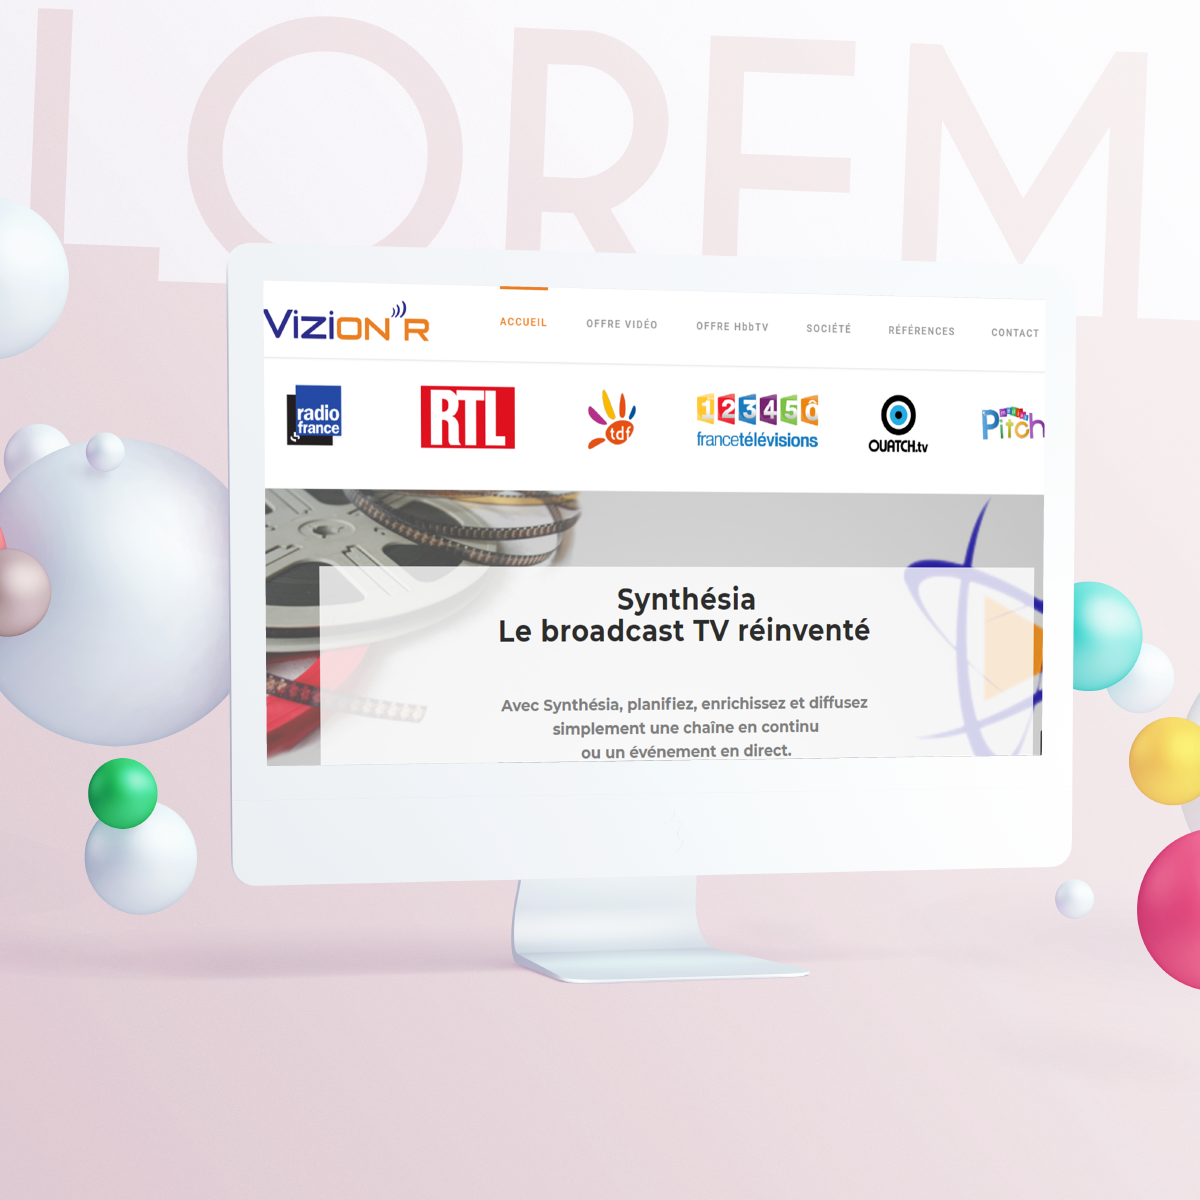 vizionr_site_web_webdesign_lorem_agence_marketing_angers